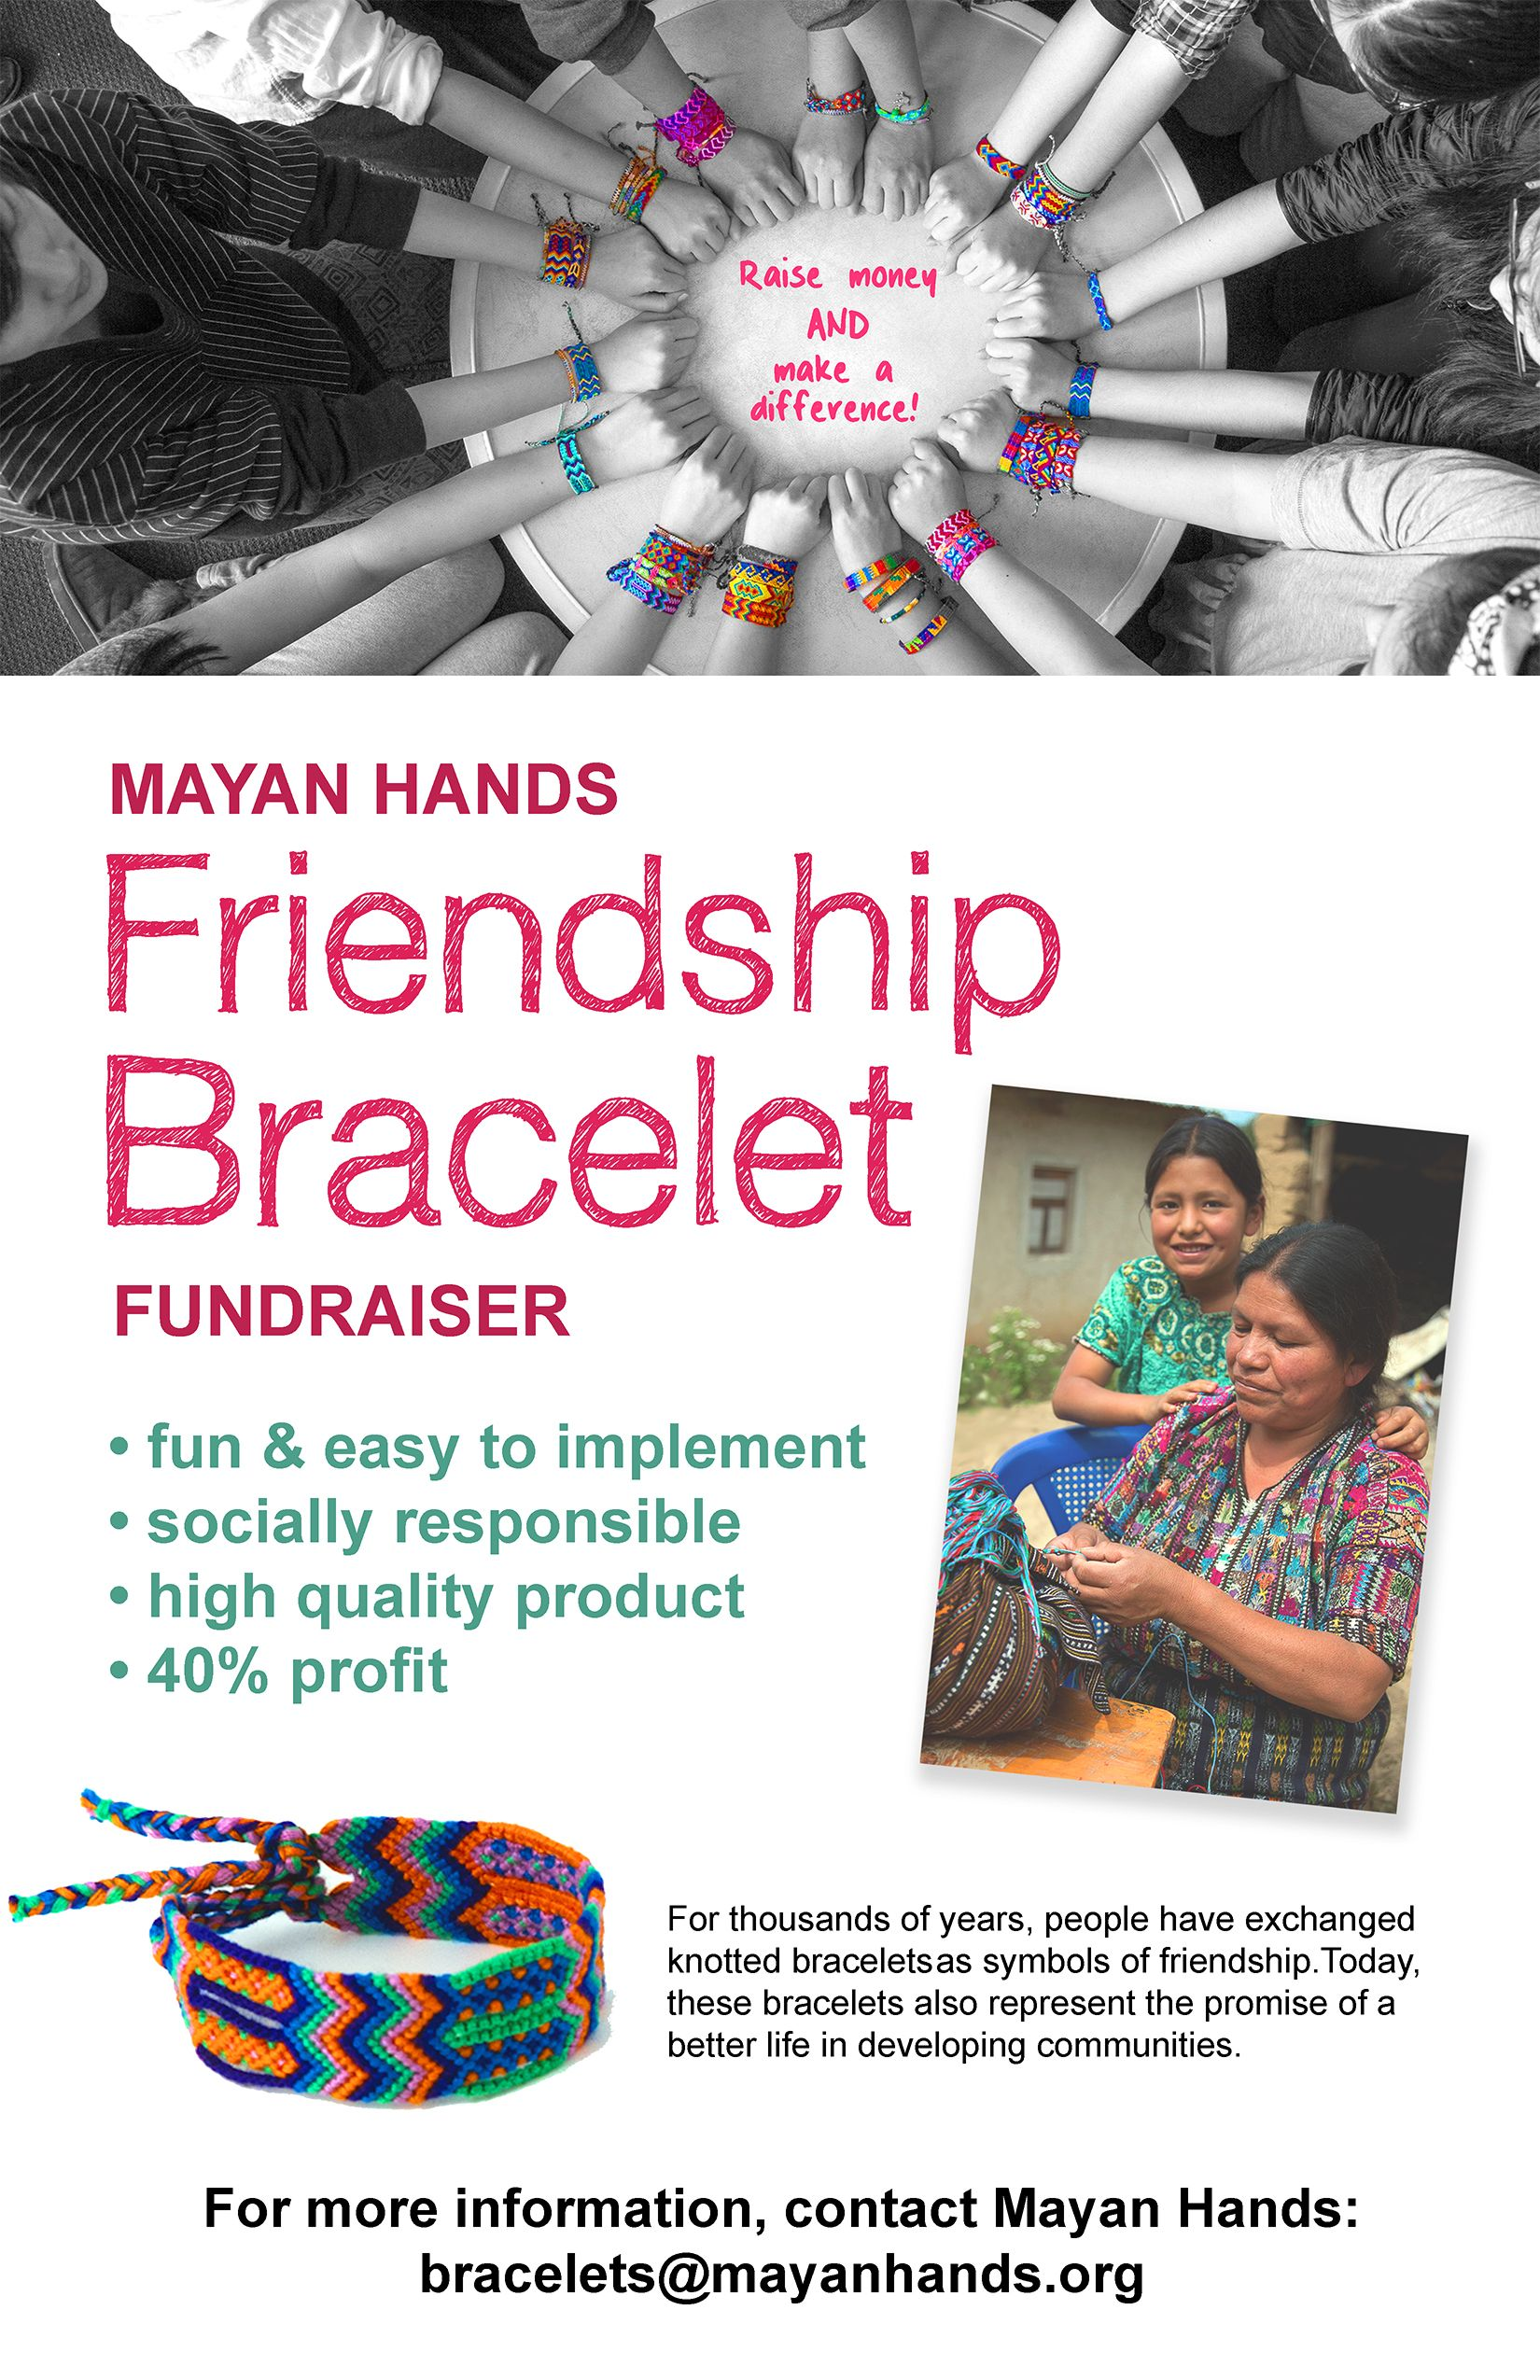 Mayan Hands Socially Responsible Fair Trade Friendship Bracelet Fundraising Program Provides Students The Opportunity To Learn